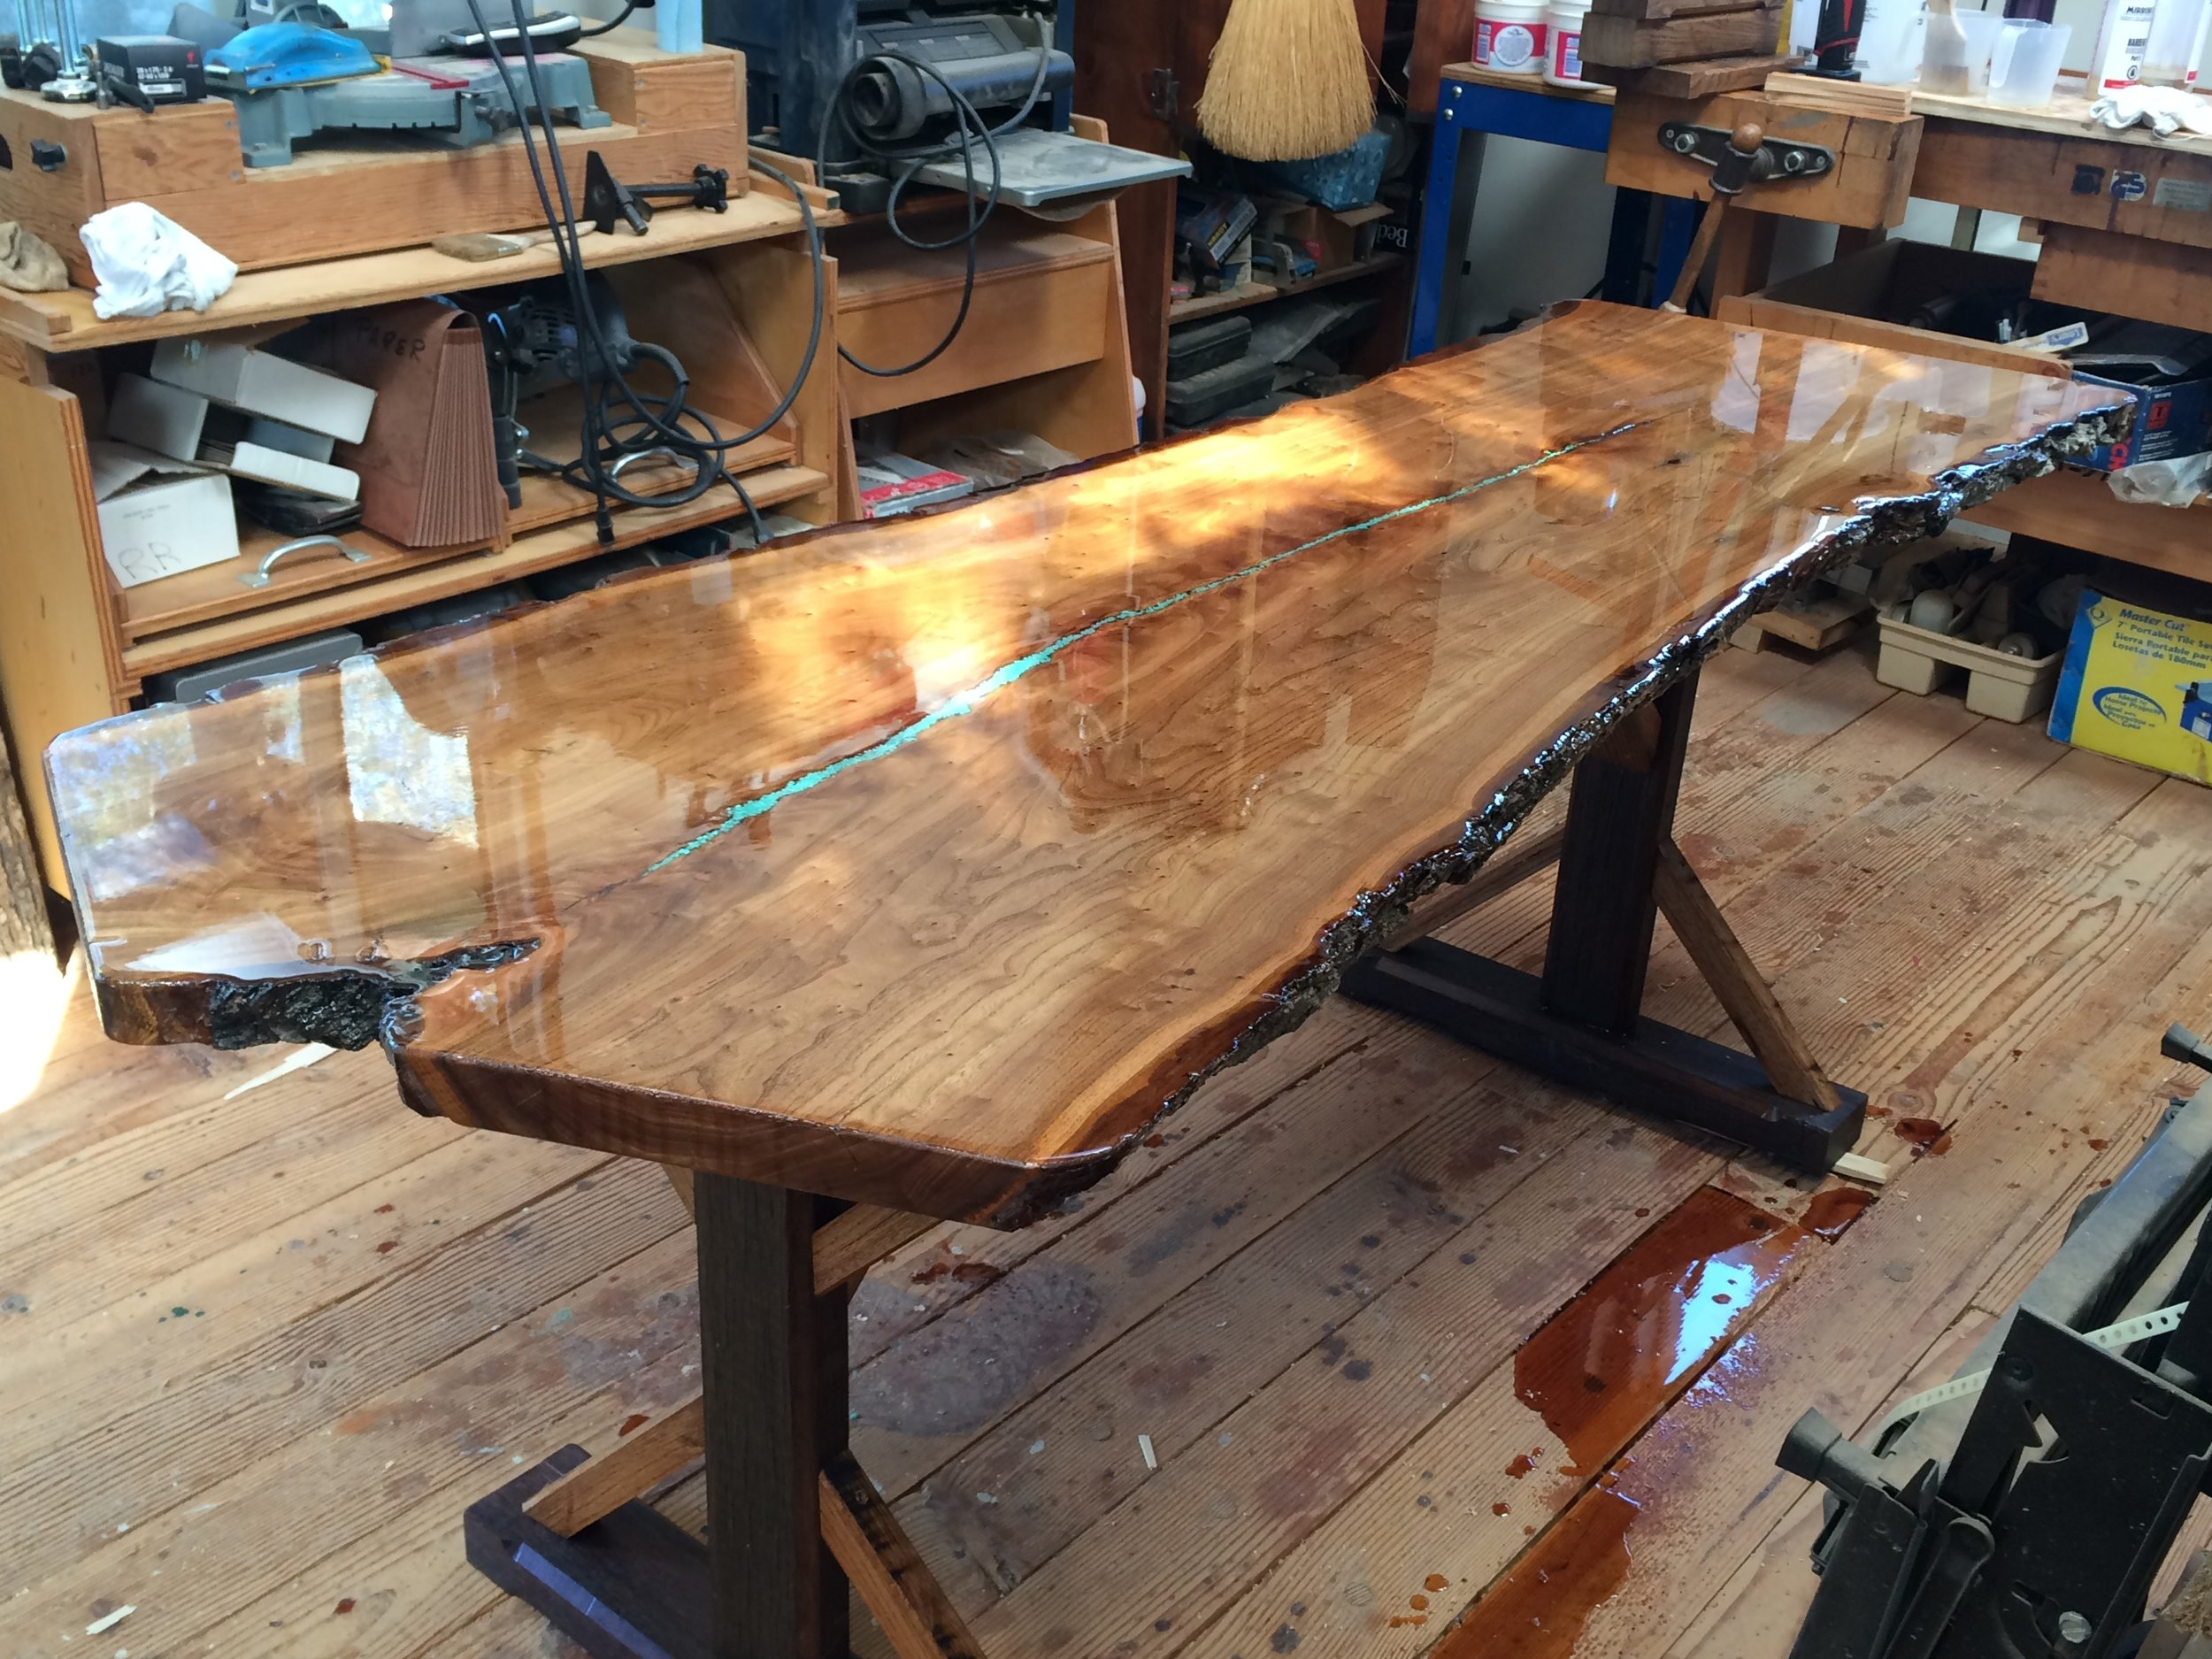 This magnificent elm slab with a beautiful live edge is a table top project designed and completed by one of our customers. The elm slab table top is a work of art with the turquoise streaming through the middle. U.S. Reclaimed, Vintage Lumber & Wood Works offers a variety of extraordinary slab pieces. You can visit the store to check out our selection and start your own project or have our team build a custom piece made just for you.